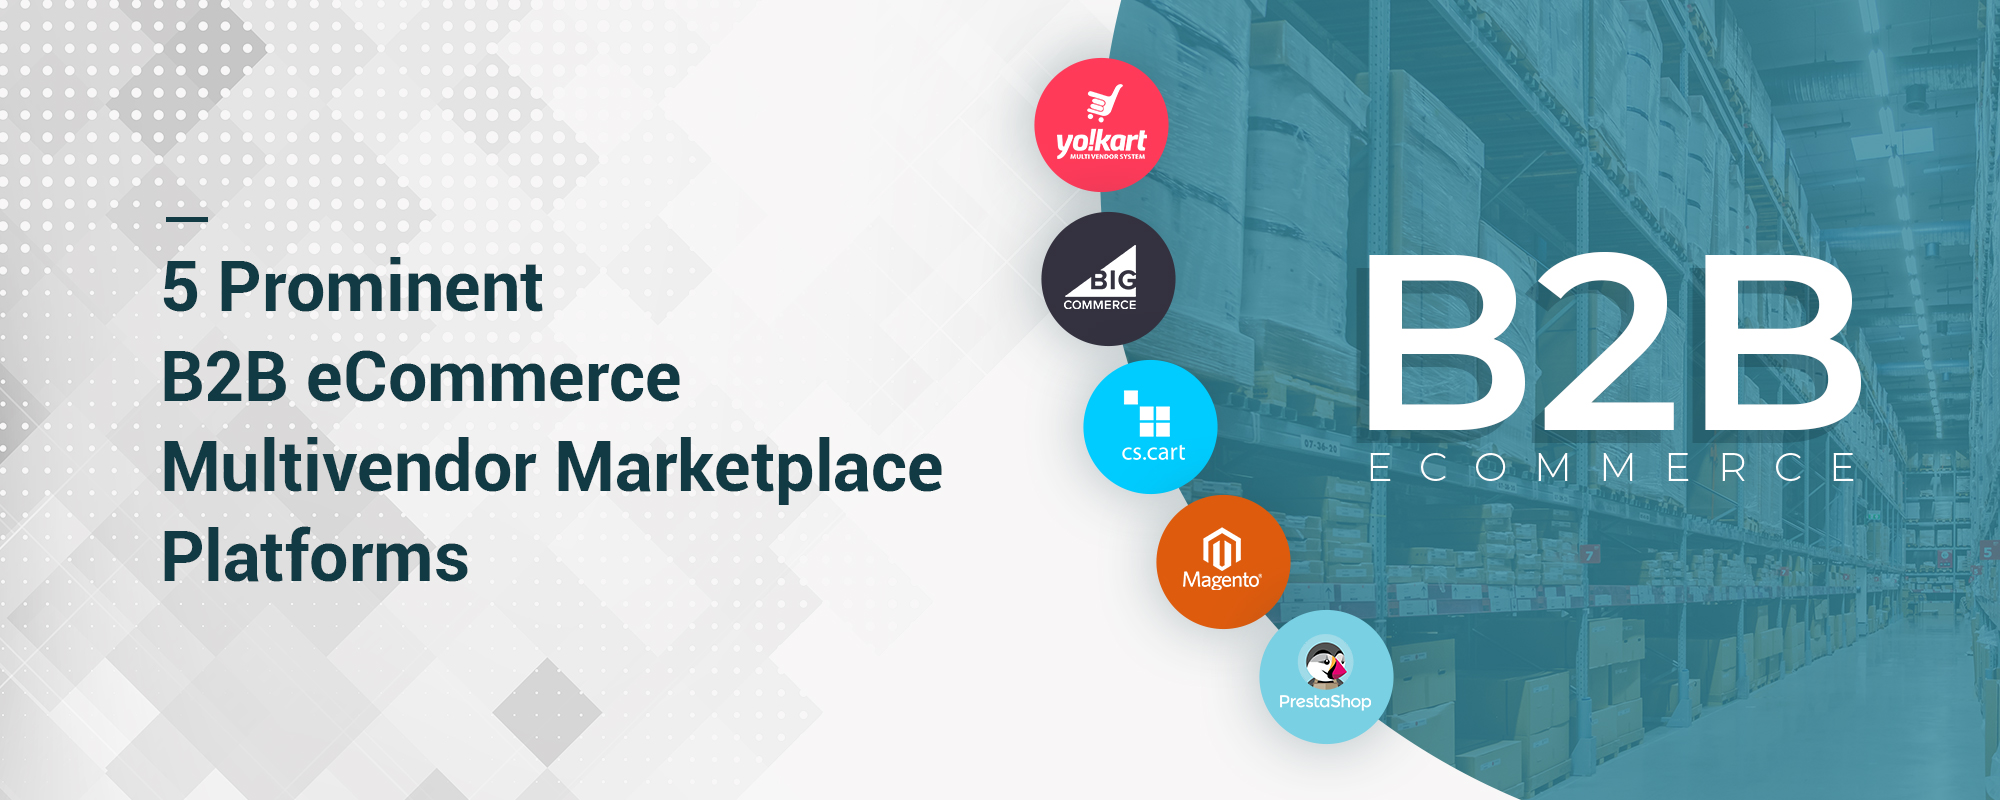 Top 5 B2B eCommerce Platforms For Multi-Vendor Marketplaces in 2021